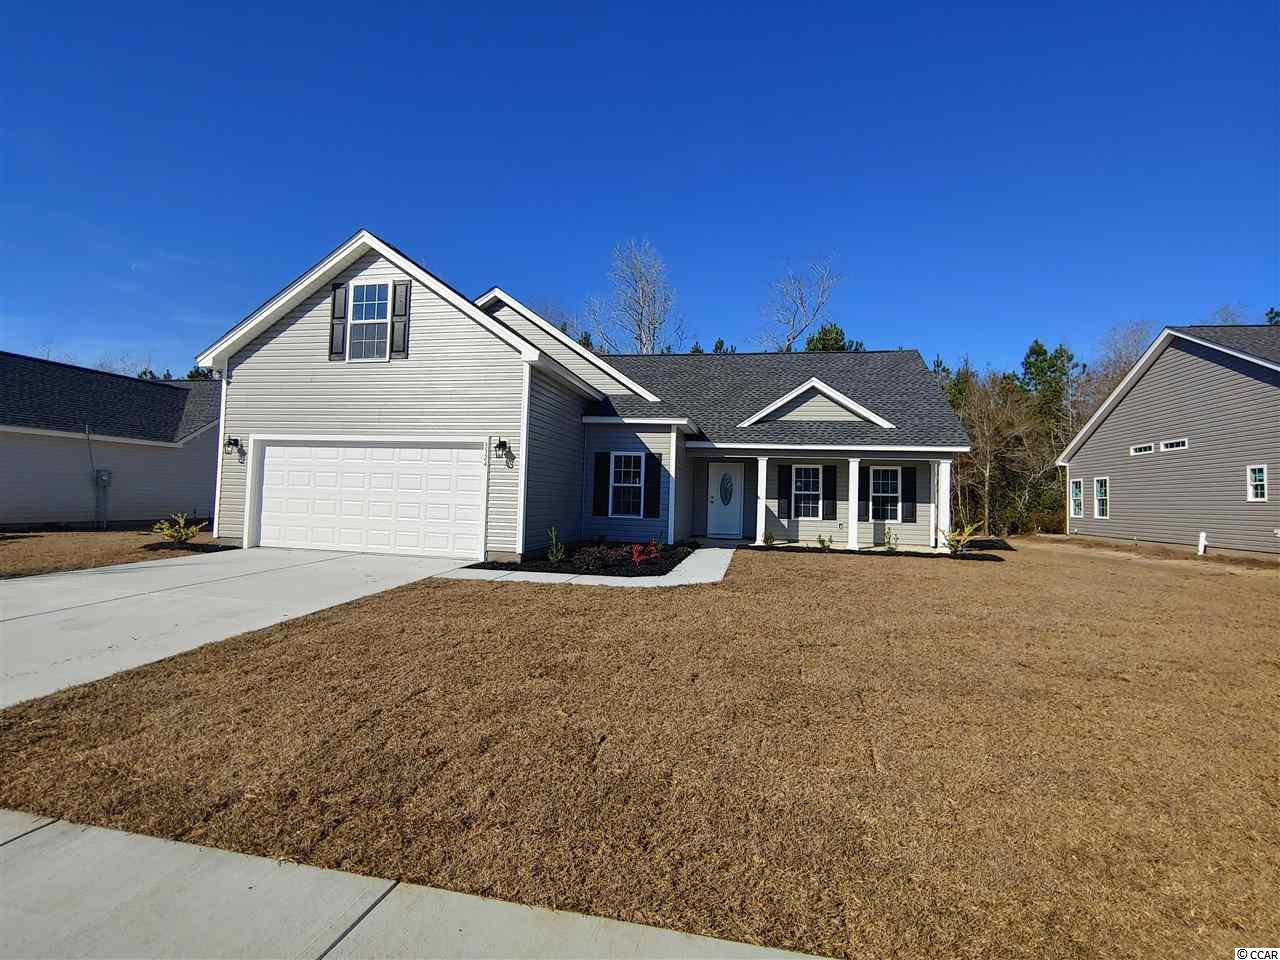 """Beautiful Dogwood Plan in The New Woodland Lakes Community in The City of Conway, SC. Woodland Lakes is a Natural Gas Community located in Conway, South Conway just minutes to Historical Downtown Conway, Coastal Carolina University, and Conway Medical Center. Plan offers all of the right features and benefits.  Features include but are not limited to 3 Bedrooms 2 Baths, Large 2 Car Garage, Great Open Floor Plan, Vaulted and Trayed Ceilings, 2 Ceiling Fans, Plant Shelf, and Vinyl Windows, Plans also include Separate 10x14 Concrete Patio,Screened Rear Porch, Covered Front Porch,  Sidewalks to Front Entry and Driveway, Granite Counter Tops in Kitchen, 2 Sinks in the Master. All of the Homes in Woodland Lakes Community come standard with the luxury of a Tankless Hot Water Heater, Gas Heat, Gas Stove and Oven. These new Homes also include 36"""" Profiled Kitchen Cabinets with Top Molding Trim and Door Knobs, Stainless Steel Appliances, Kitchen Pantry, Linen Closet, Completely Trimmed and Painted Garage with Drop Down Storage Access, which is Floored for your convenience, and Electronic Garage Door with Remote Openers. """"Low E"""" Energy Efficient Windows, Upgraded Insulation Package, Landscaped, Sodded Yard, and so much more.  All of the homes in Woodland Lakes are built with a """"Maintenance Free"""" Lifestyle in mind. Woodland Lakes is South Conway's Newest Community conveniently located near Shopping, Medical Offices and Hospitals, Restaurants,  and Schools. The Builder DOES ALLOW CUSTOM HOME CHANGES!  Call or visit us online today and find out why This Builder is The Areas Premier Local Builder! Other Floor Plans, Inventory Homes and Custom Plans are Available. Call the Onsite Model for New Homes Availability and to make an Appointment to see Woodland Lakes."""